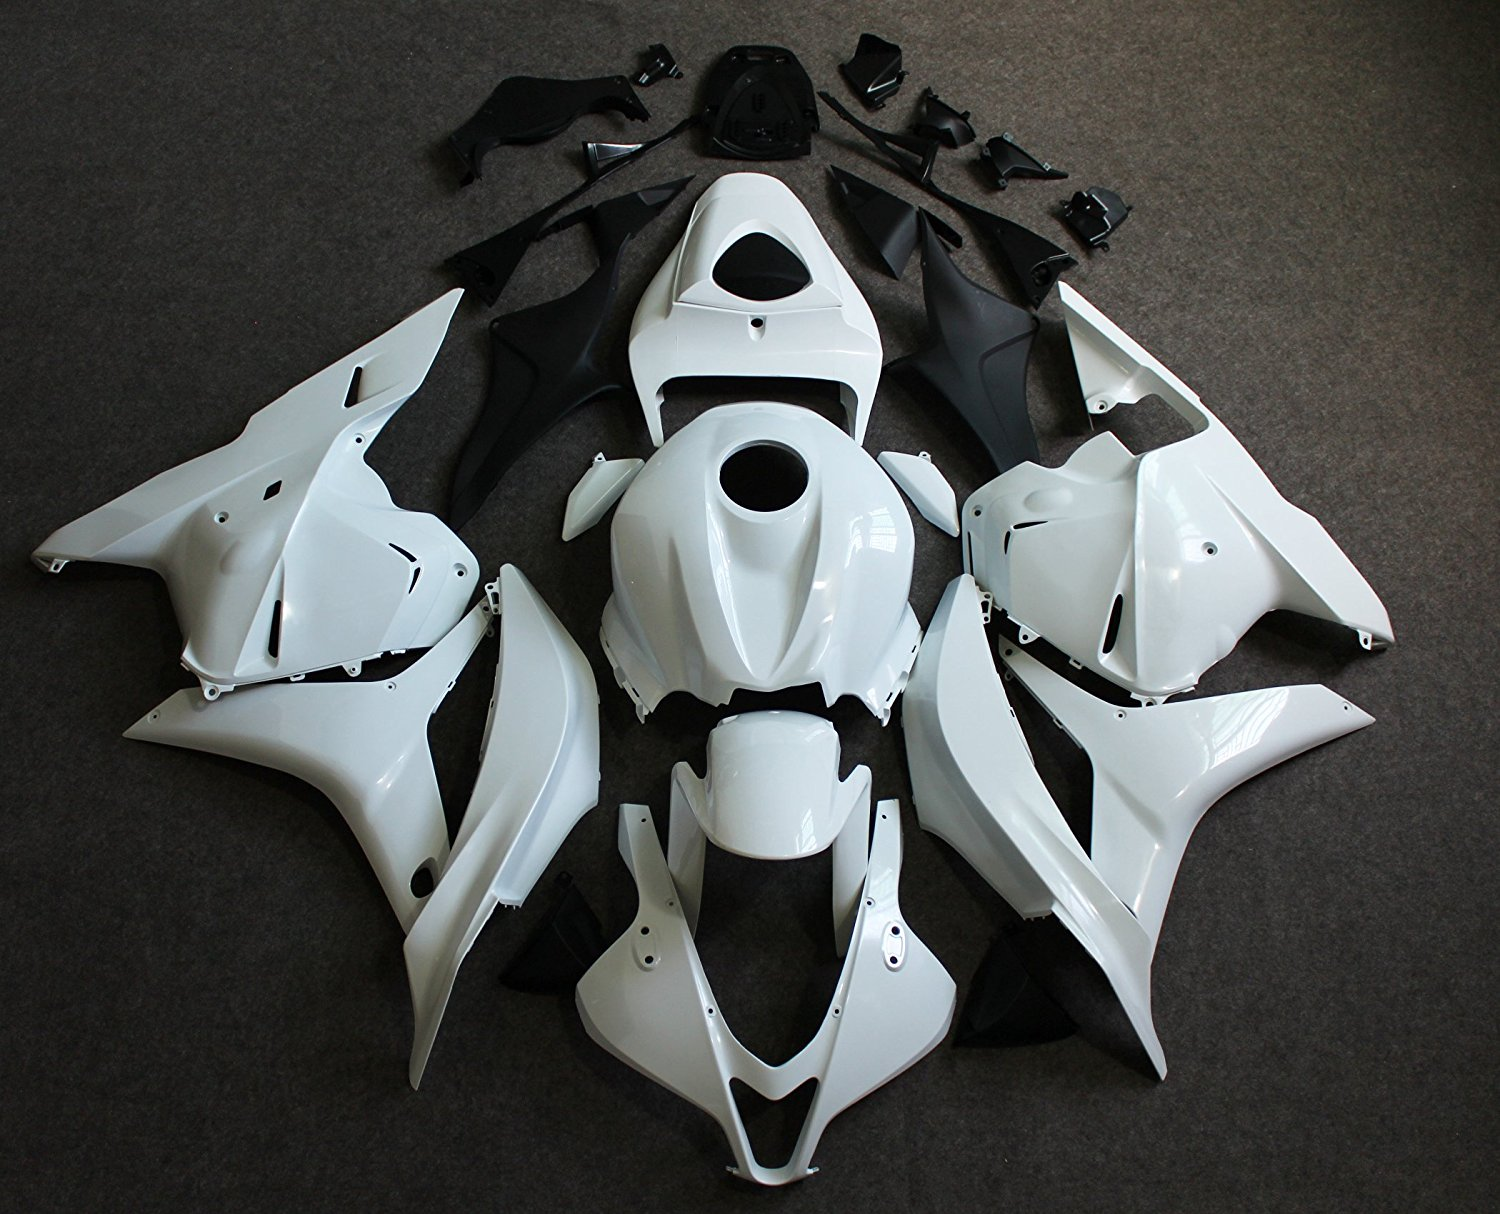 ABS Unpainted Fairing Kit for Honda CBR 600 RR CBR600RR F5 2009 2010 CBR600 RR CBR 600RR 09 10 Motorcycle Injection Fairings Set unpainted tail fairing kit rear for honda cbr600rr cbr 600 rr 2003 2004 cbr600 cbr 600rr 03 04 motorcycle frame injection mold